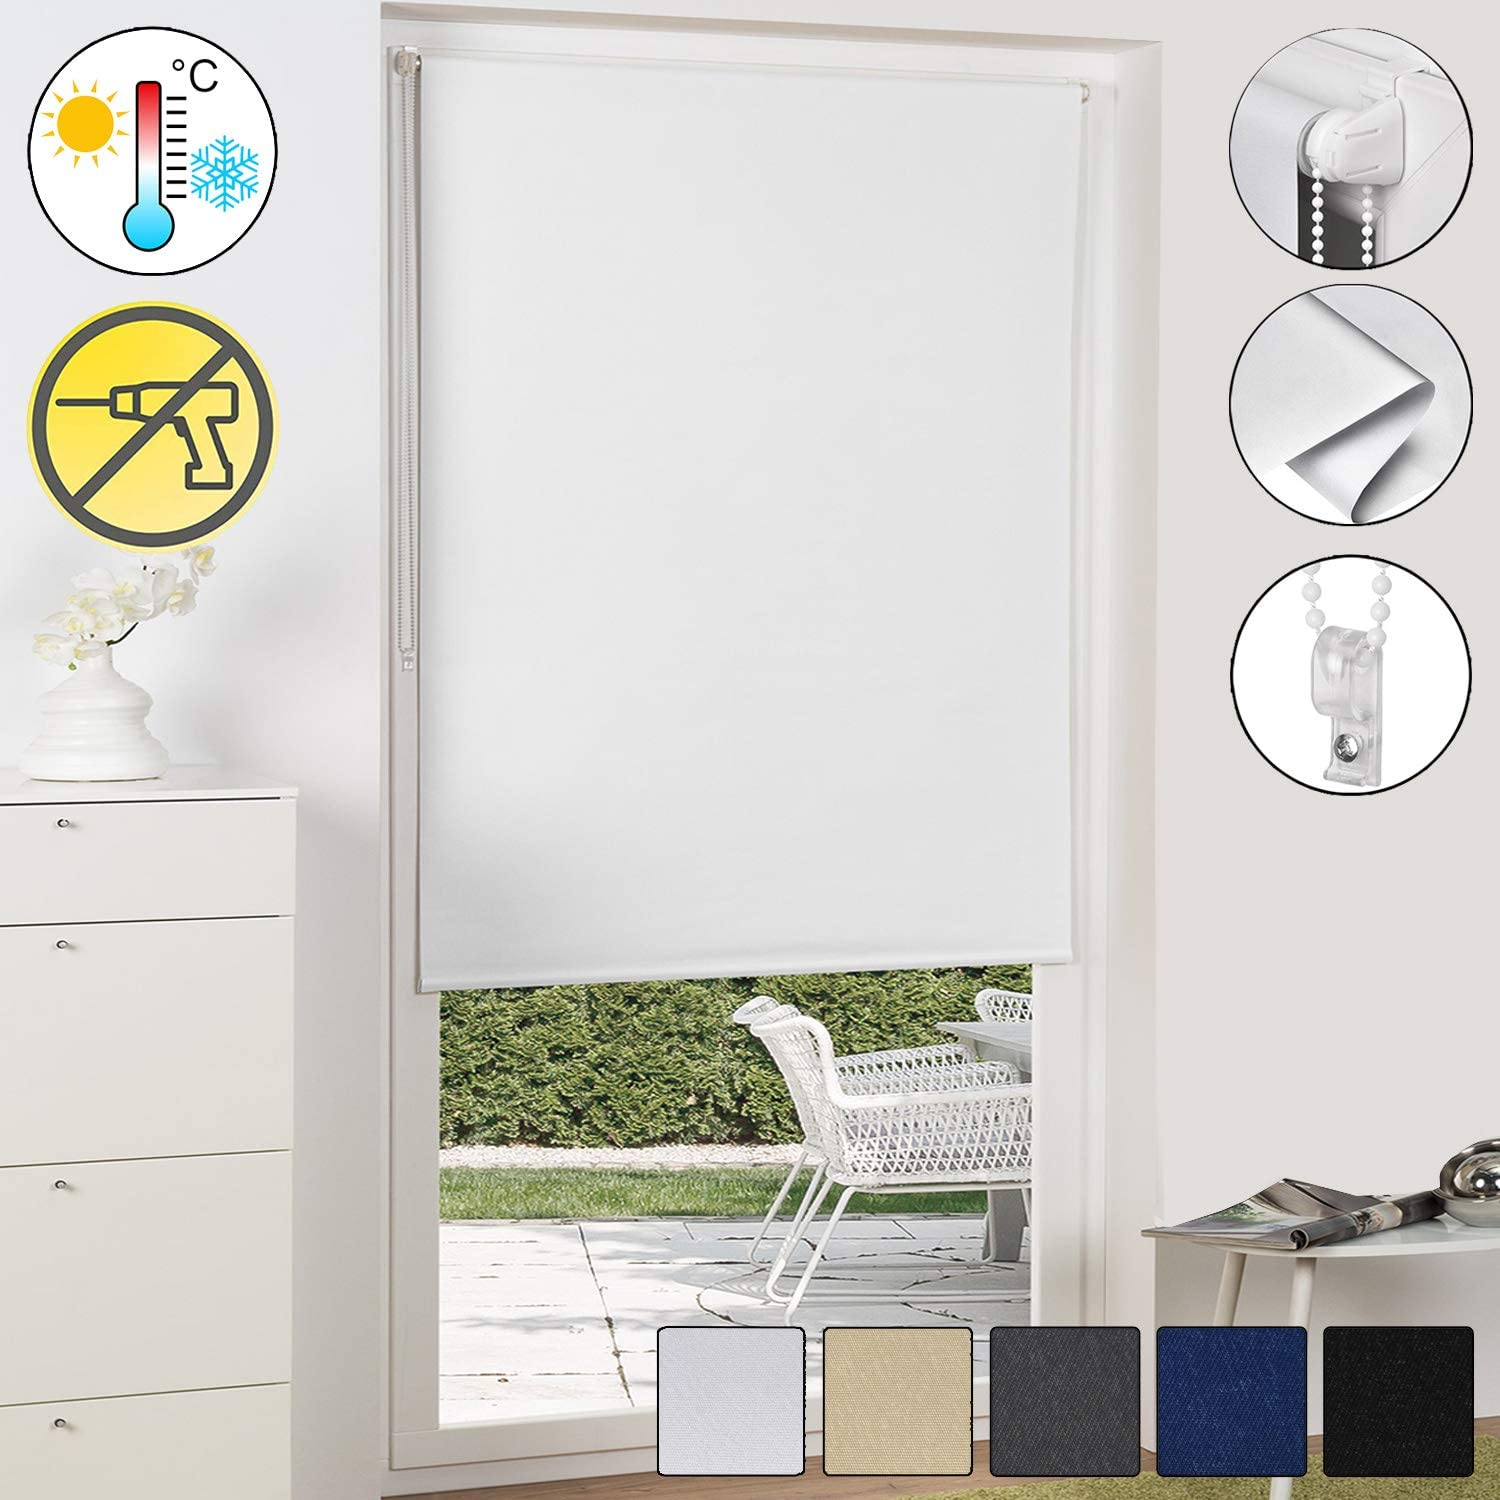 Sol Royal Sol Reflect T42 Persiana térmica Opaca Estor/Cortina Enrollable KLEMMFIX fijación fácil 90 x 210 cm Blanco: Amazon.es: Hogar